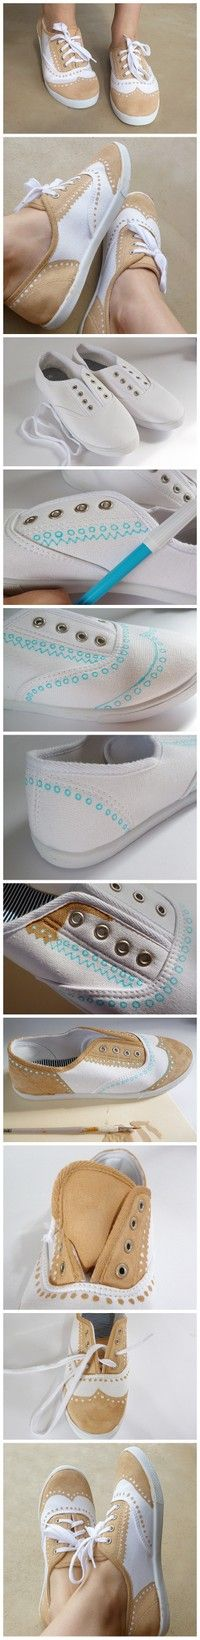 LOVE THIS! #keds #saddleshoes color in your shoes